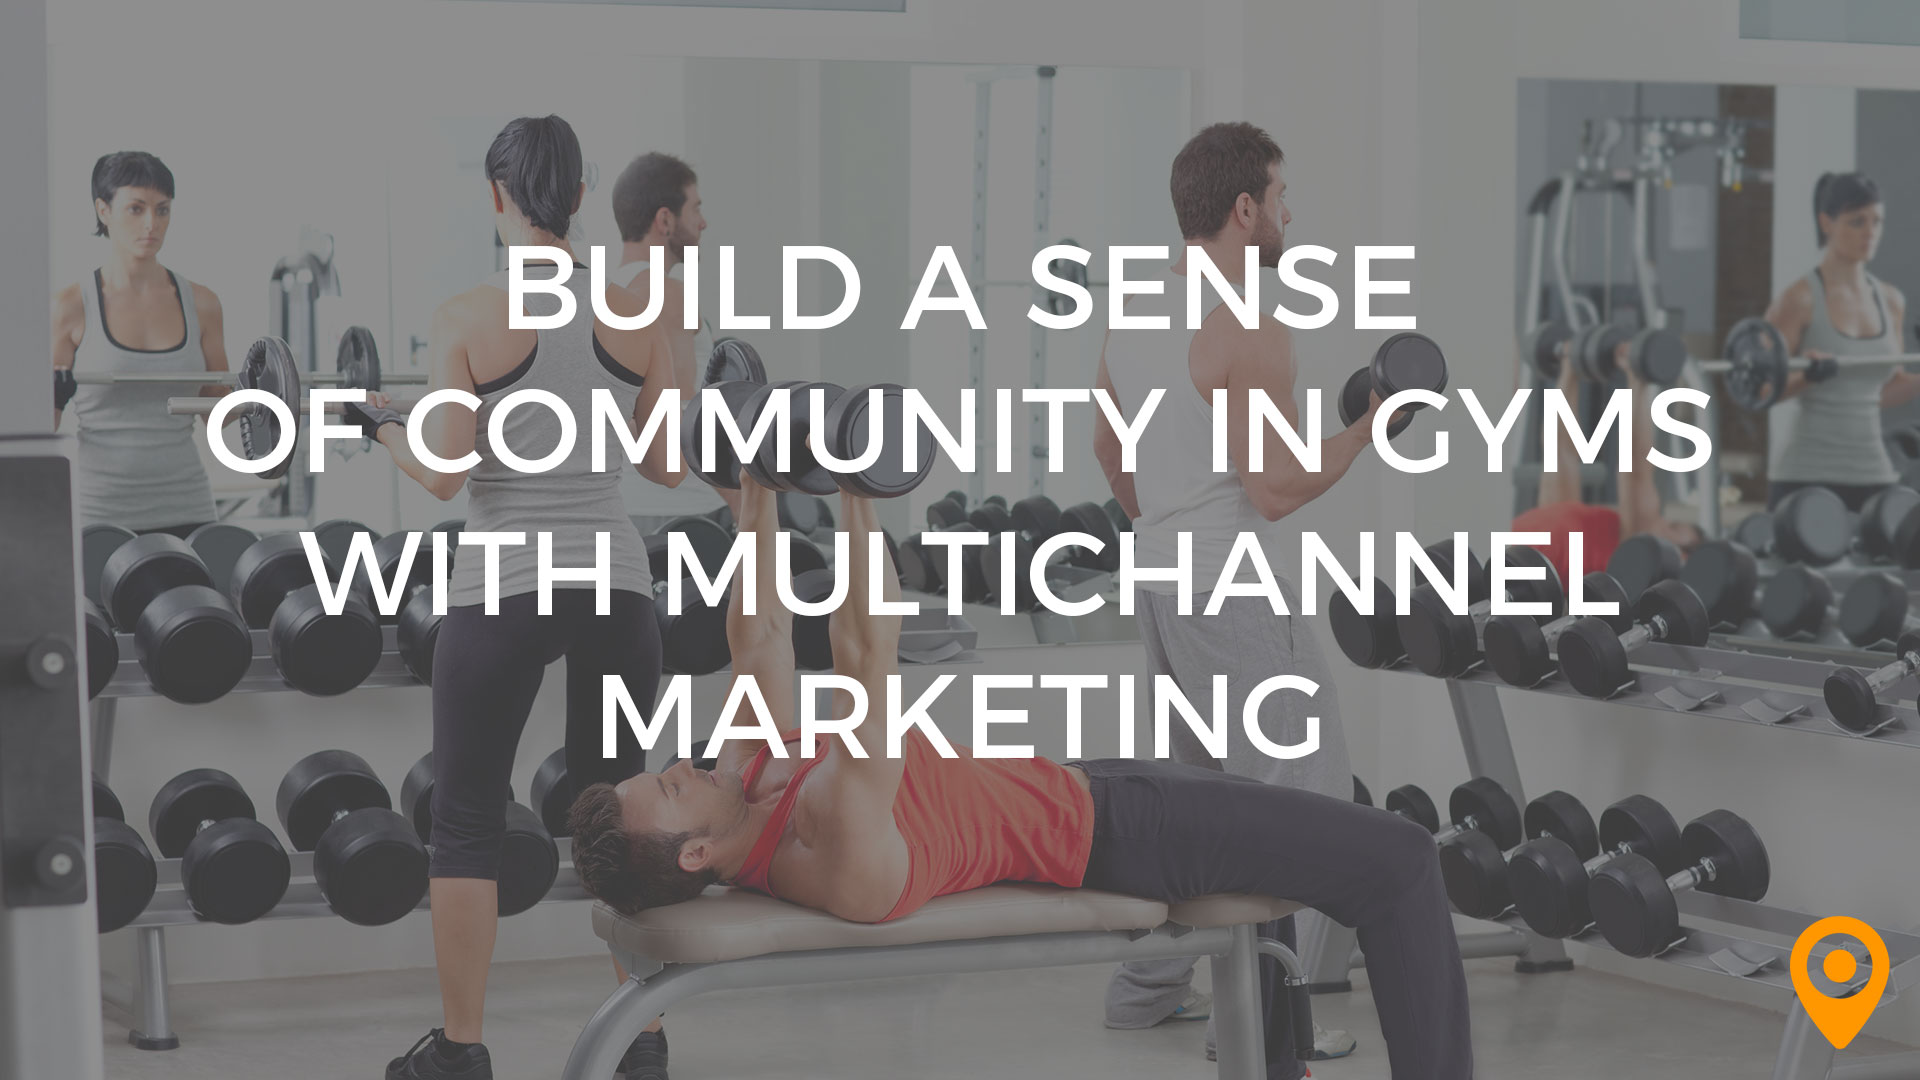 Multichannel Marketing for Gyms